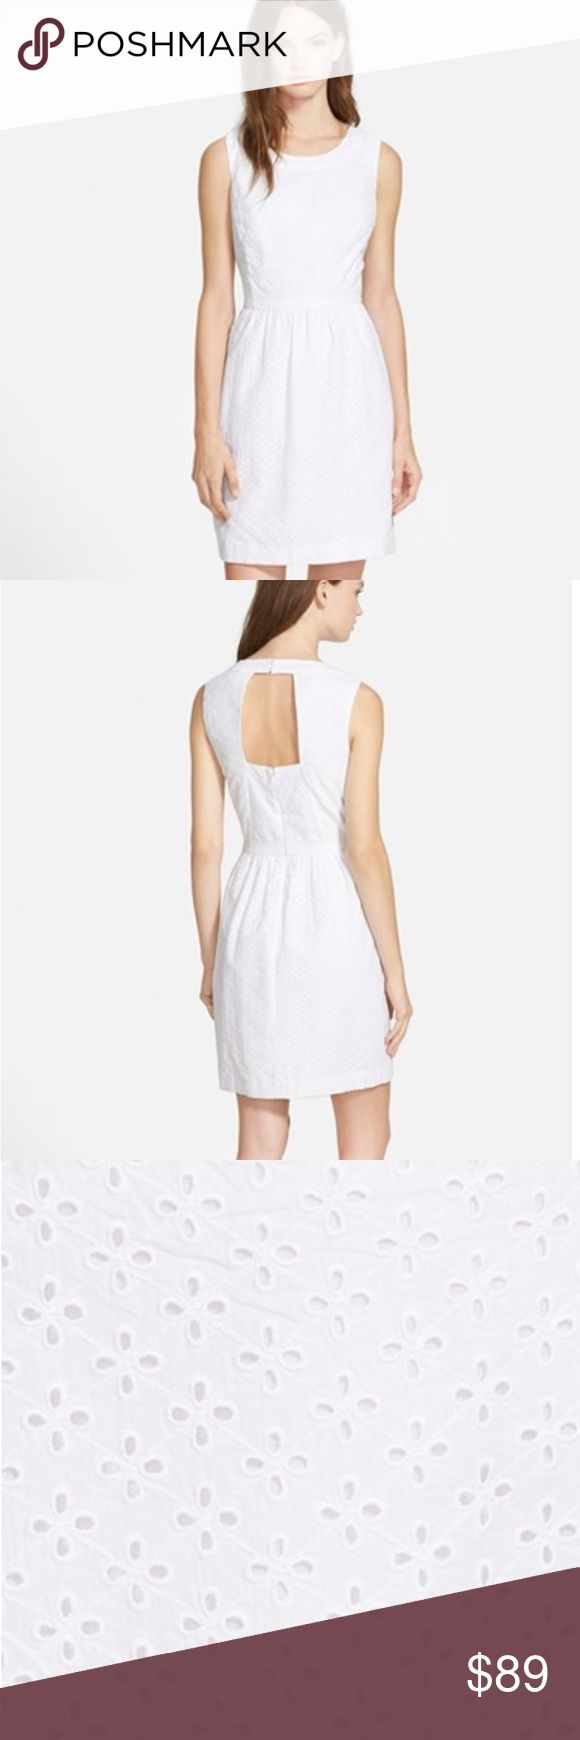 Vineyard Vines Eyelet Dress A fitted waistline lends figure-defining flattery to a sleeveless cotton dress punctuated with allover eyelet detailing and a skin-baring back cutout. A flattering A-line skirt trimmed with dainty scallops completes the ethereal look. Vineyard Vines Dresses